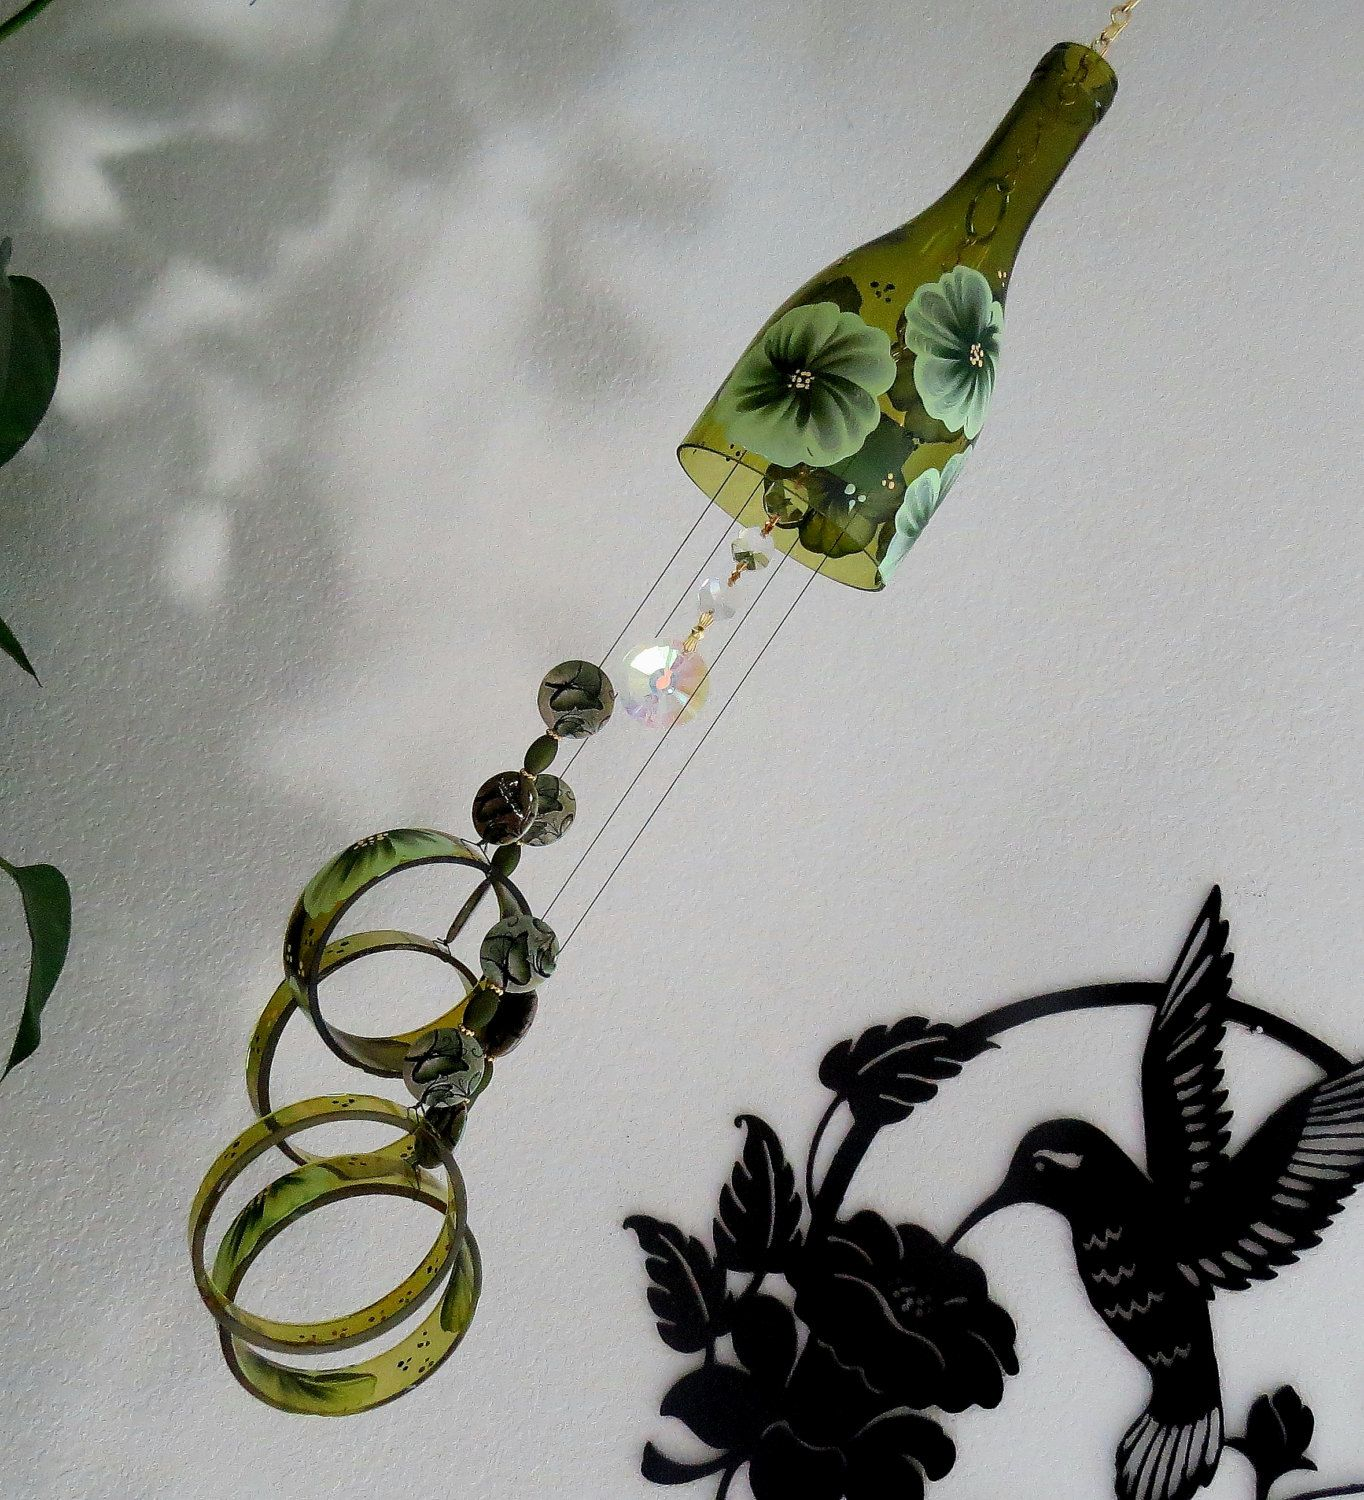 Wine Bottle Wind Chime, Amber Wind Chime, Green Flowers, Yard Art, Patio  Decor, Recycled Bottle Wind Chime, Hand Painted Chime